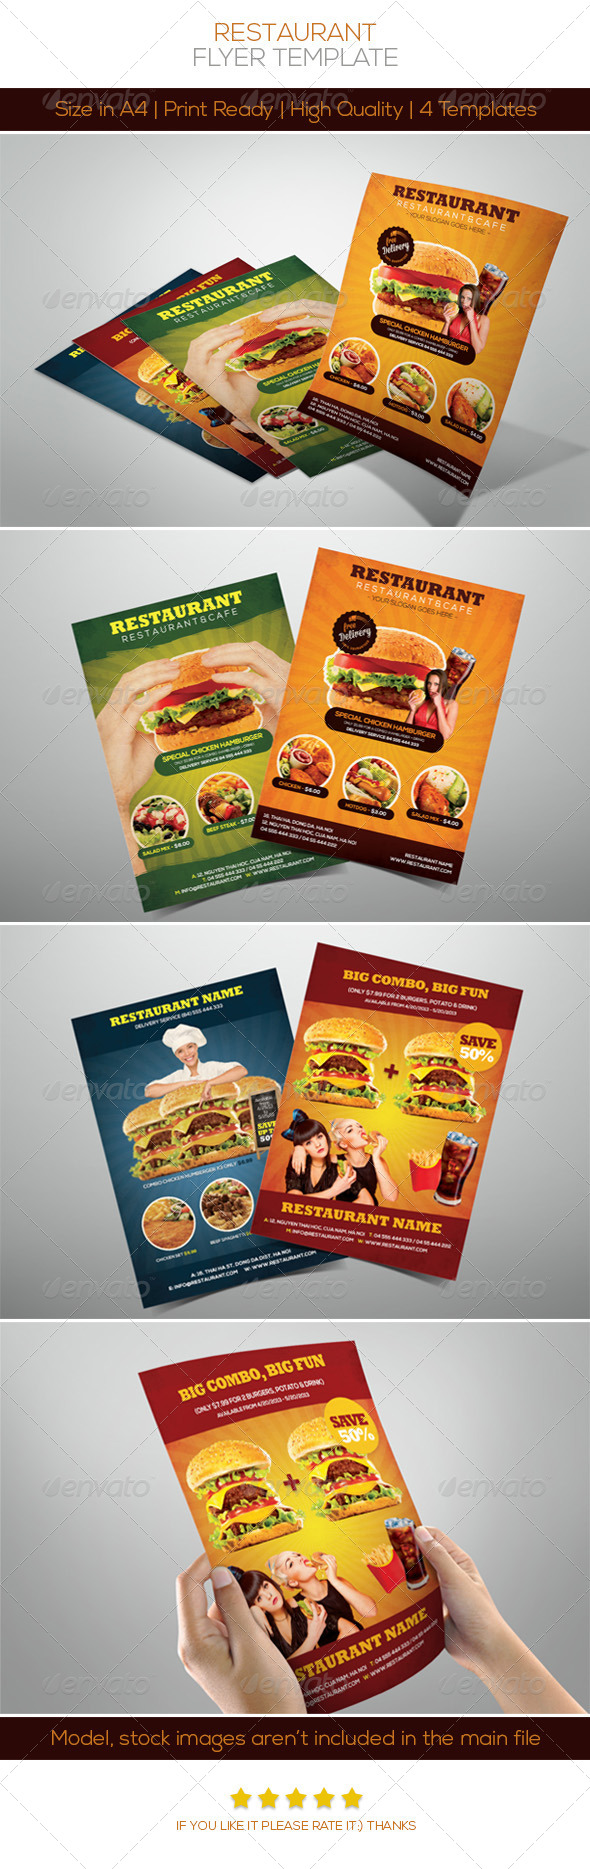 GraphicRiver Premium Restaurant Flyers 4654570